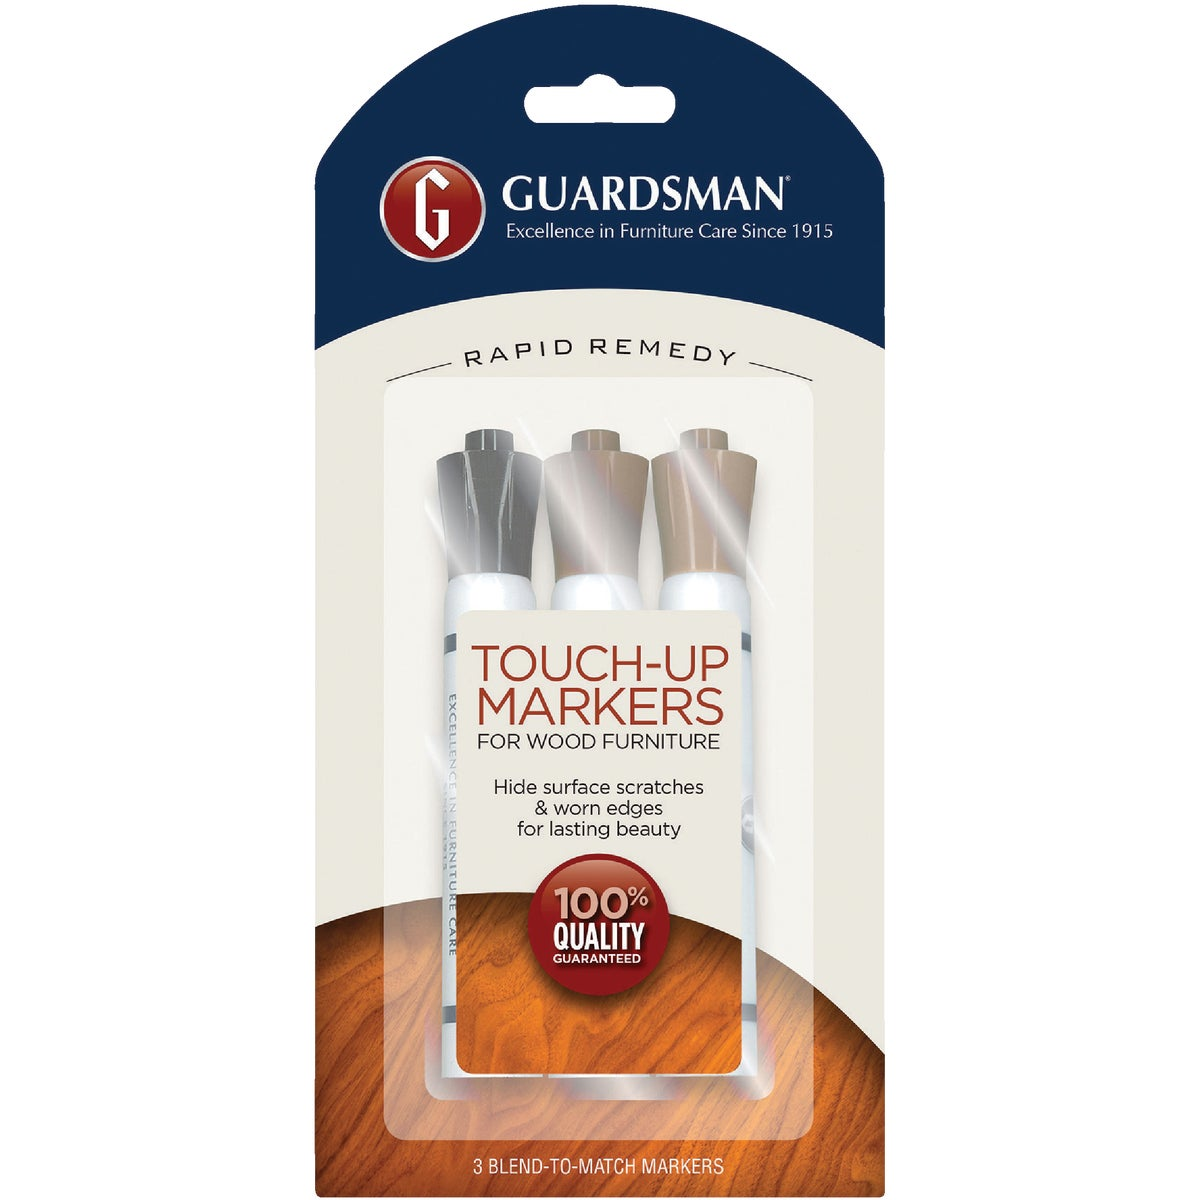 FURN TOUCH-UP MARKERS - 465200 by Valspar  Guardsman